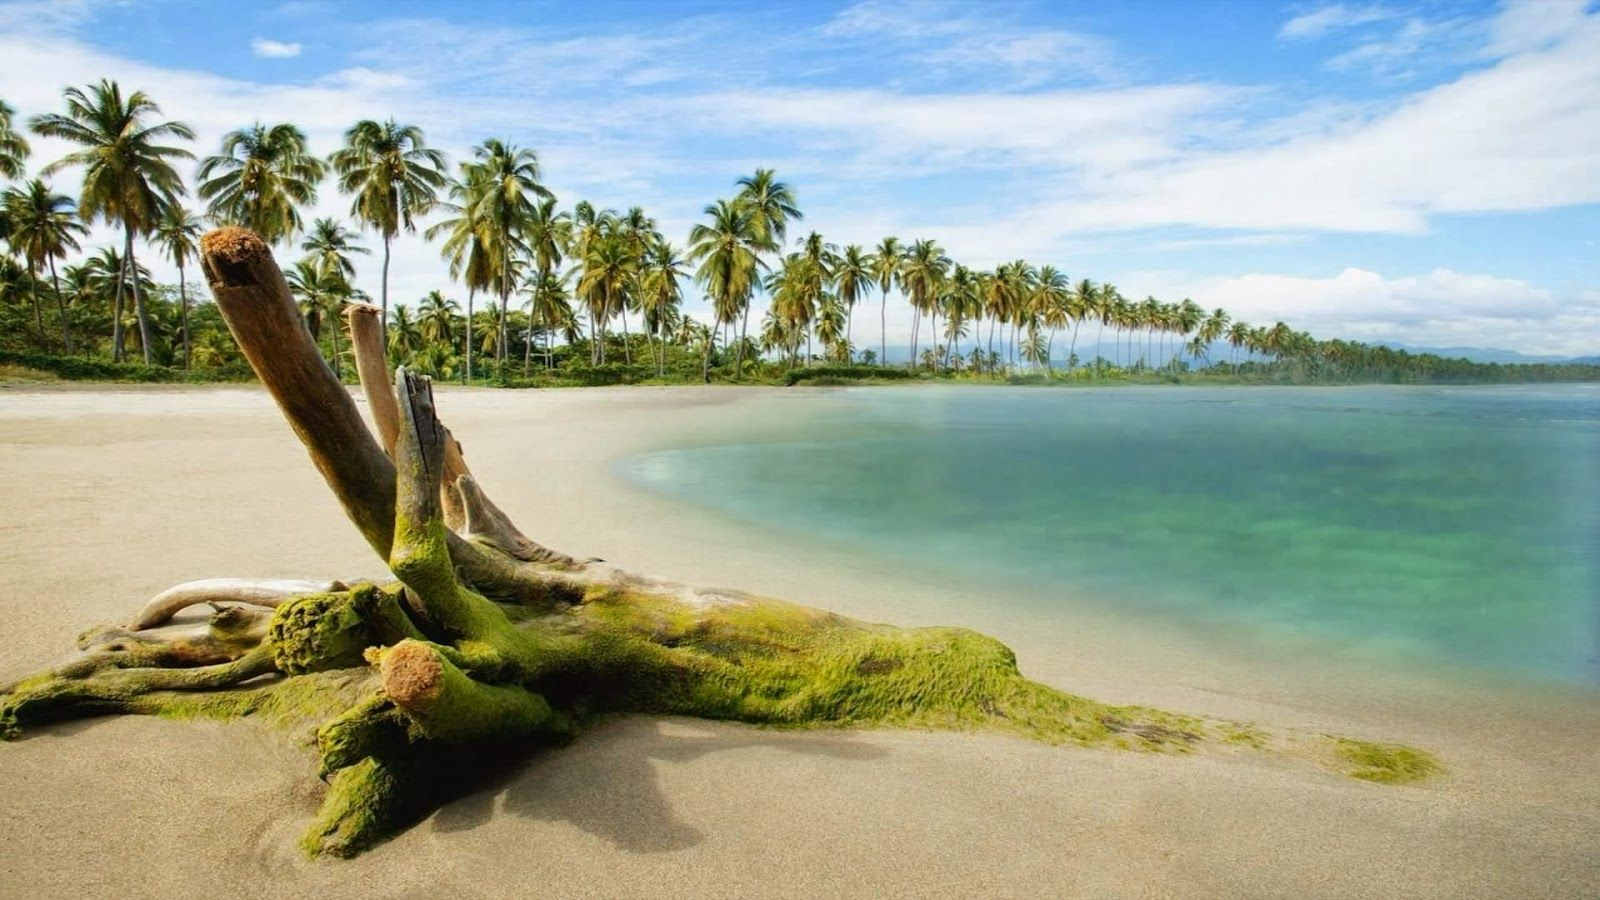 Beach Nature HD Wallpapers 1080p Widescreen Hd nature